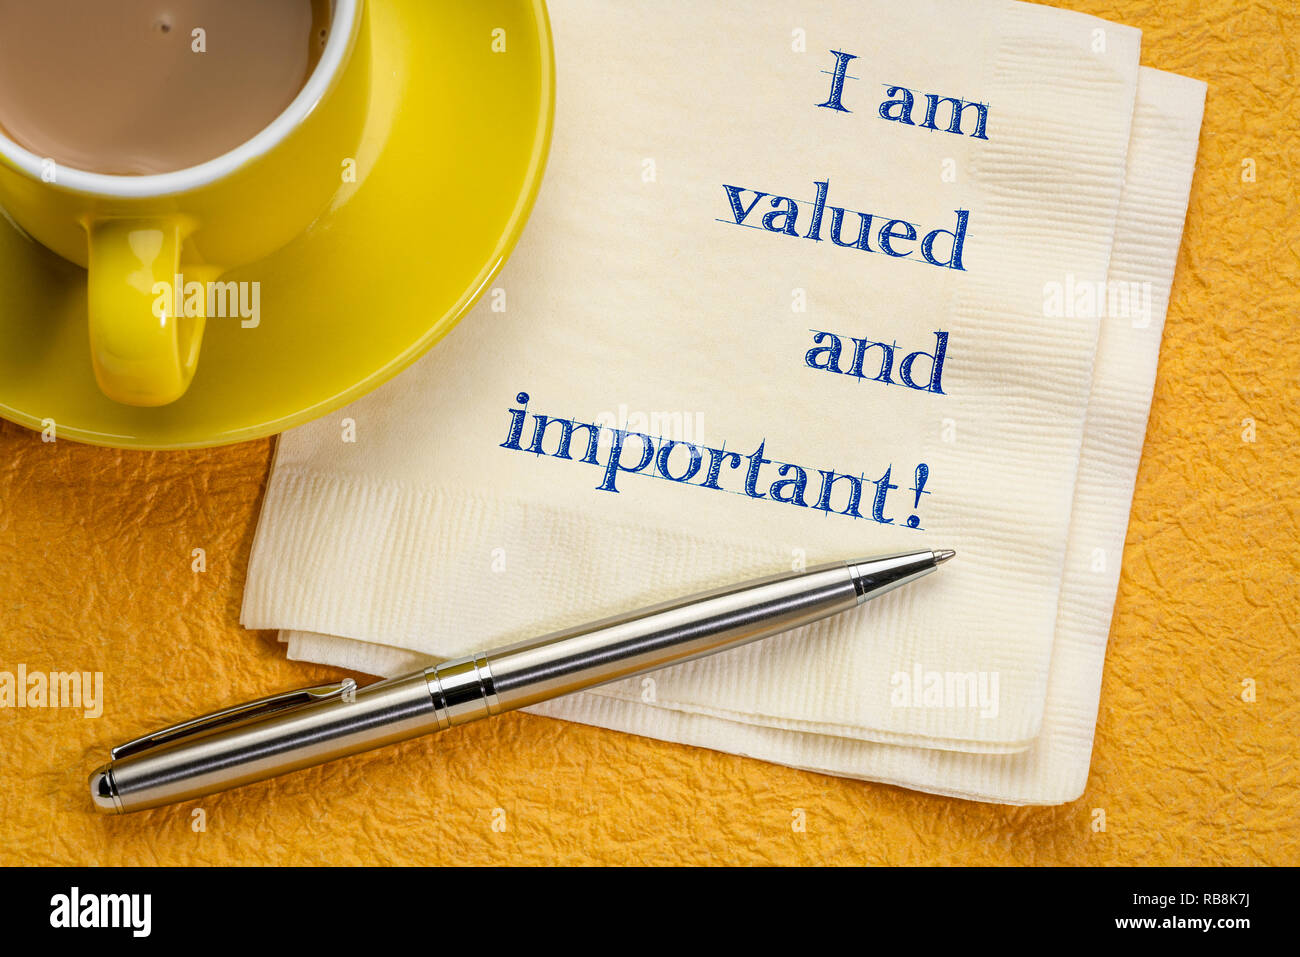 I am valued and important - handwriting on a napkin with a cup of coffee - Stock Image